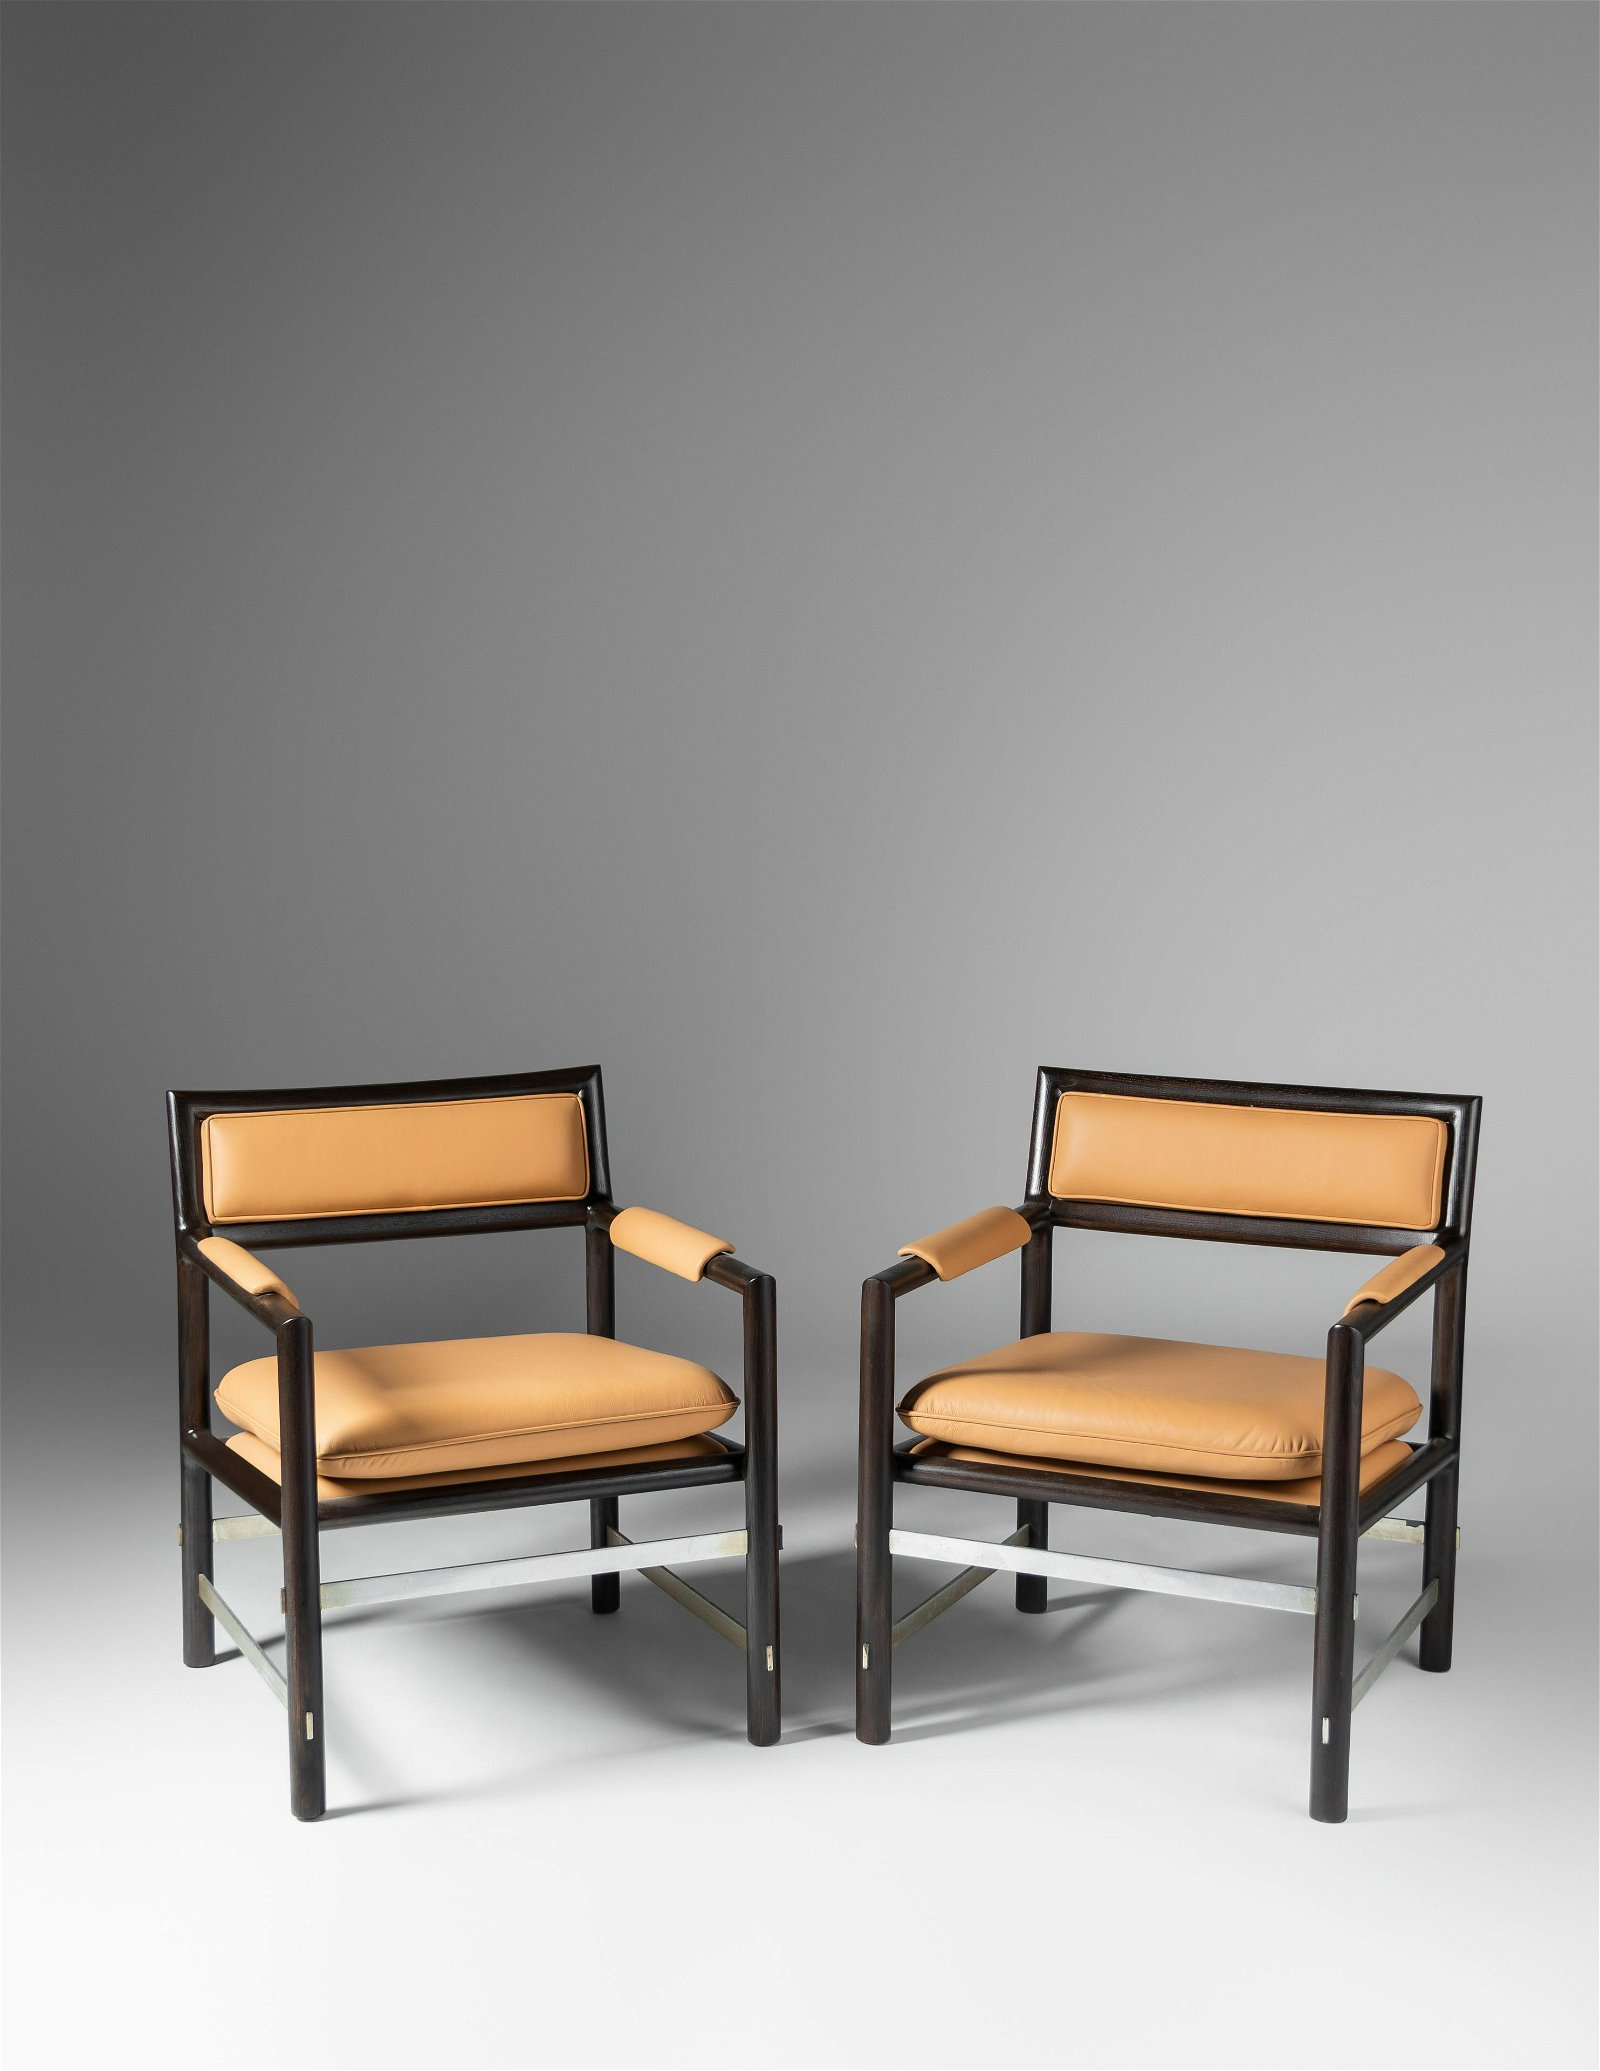 Edward Wormley (American, 1907-1995) Pair of Armchairs,